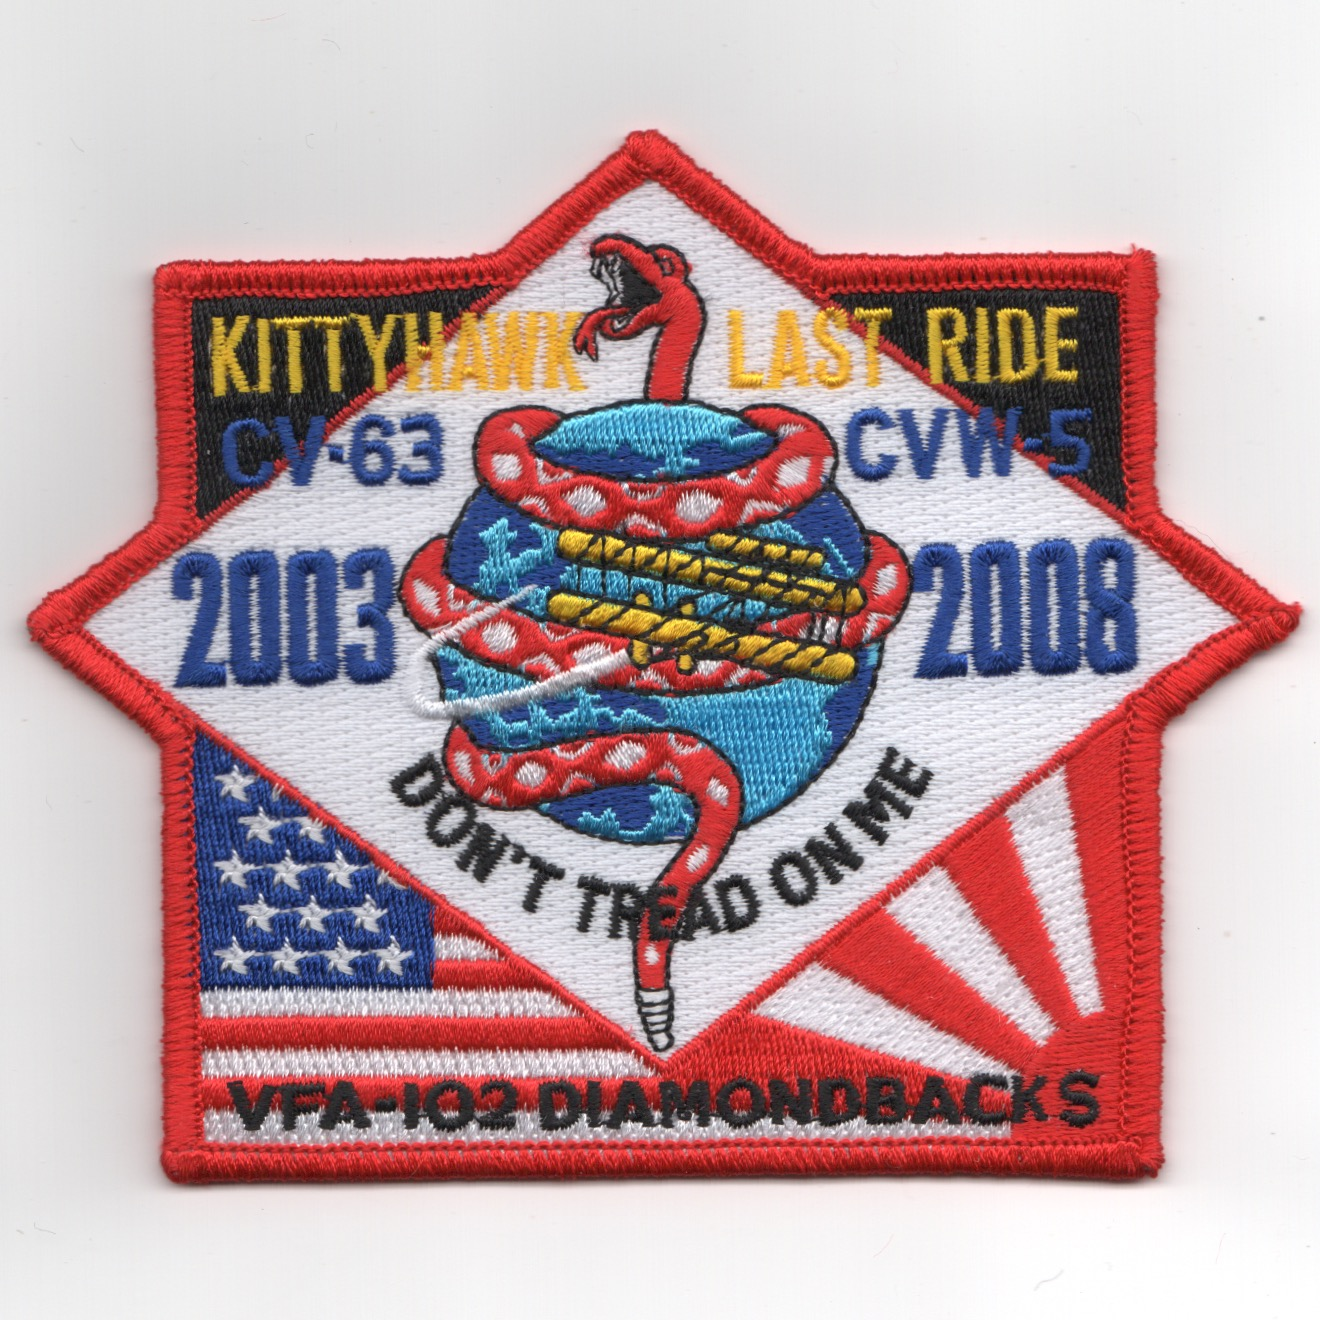 VFA-102 '2008 LAST RIDE' Cruise Patch